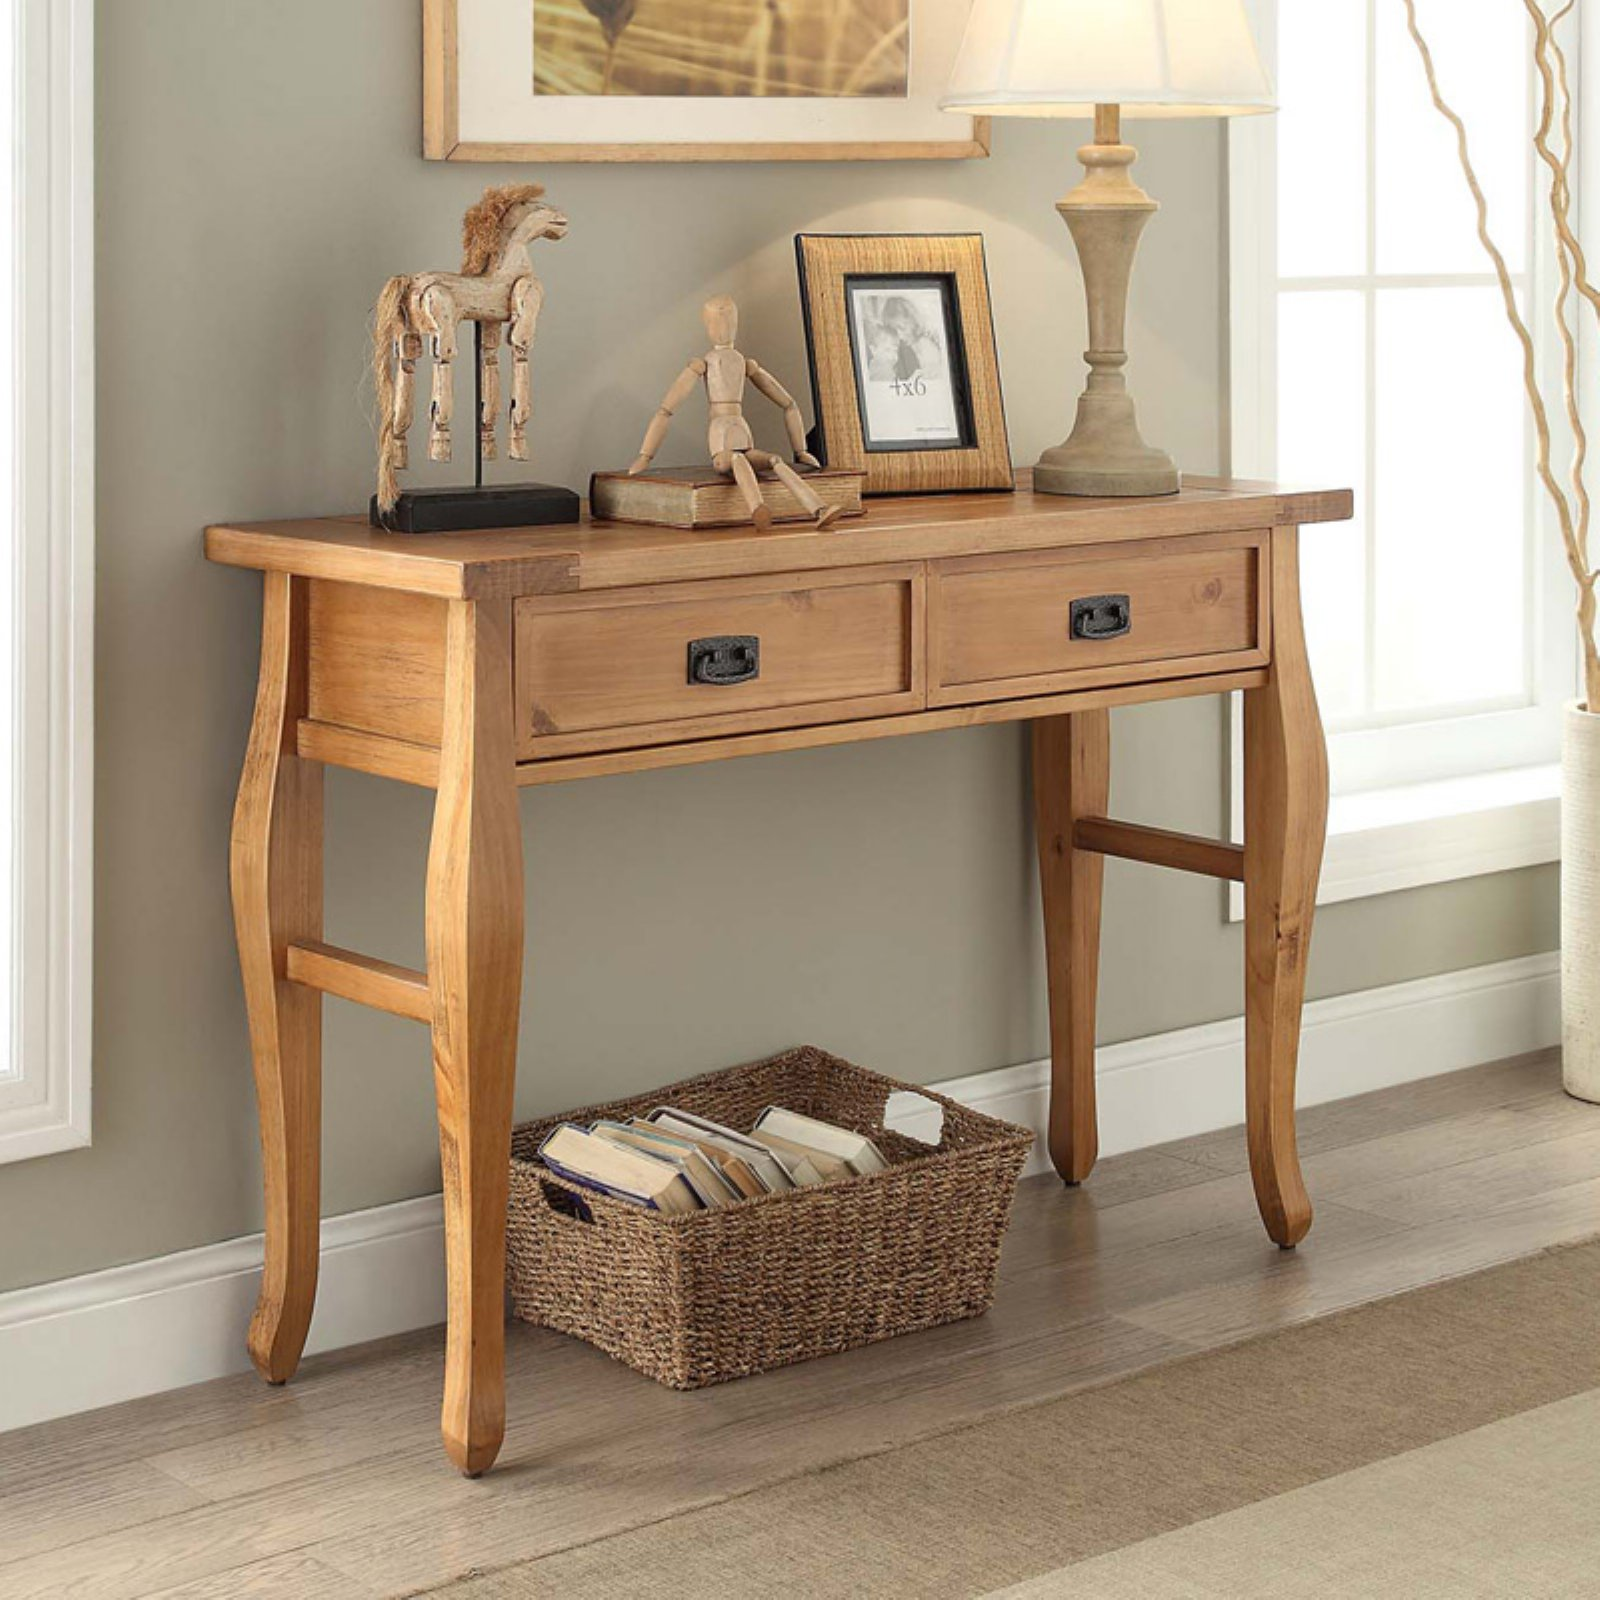 Linon Santa Fe Console Table, Antique Pine Finish